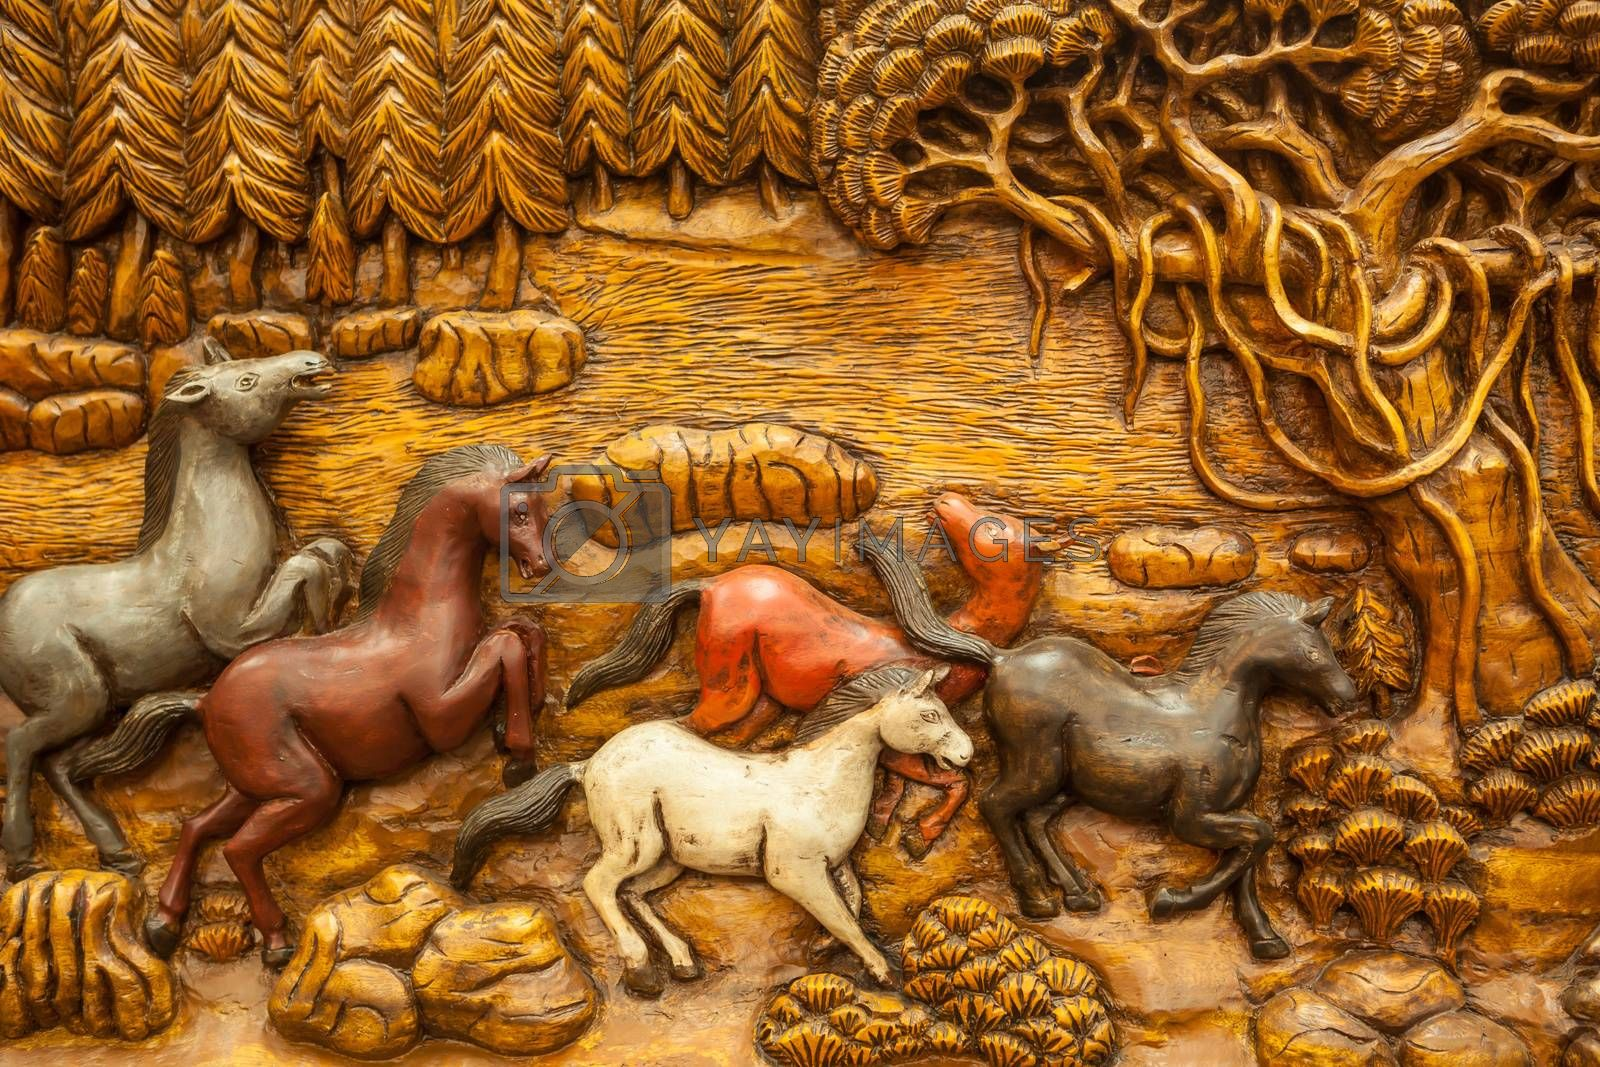 Carved Thai horse on the wood